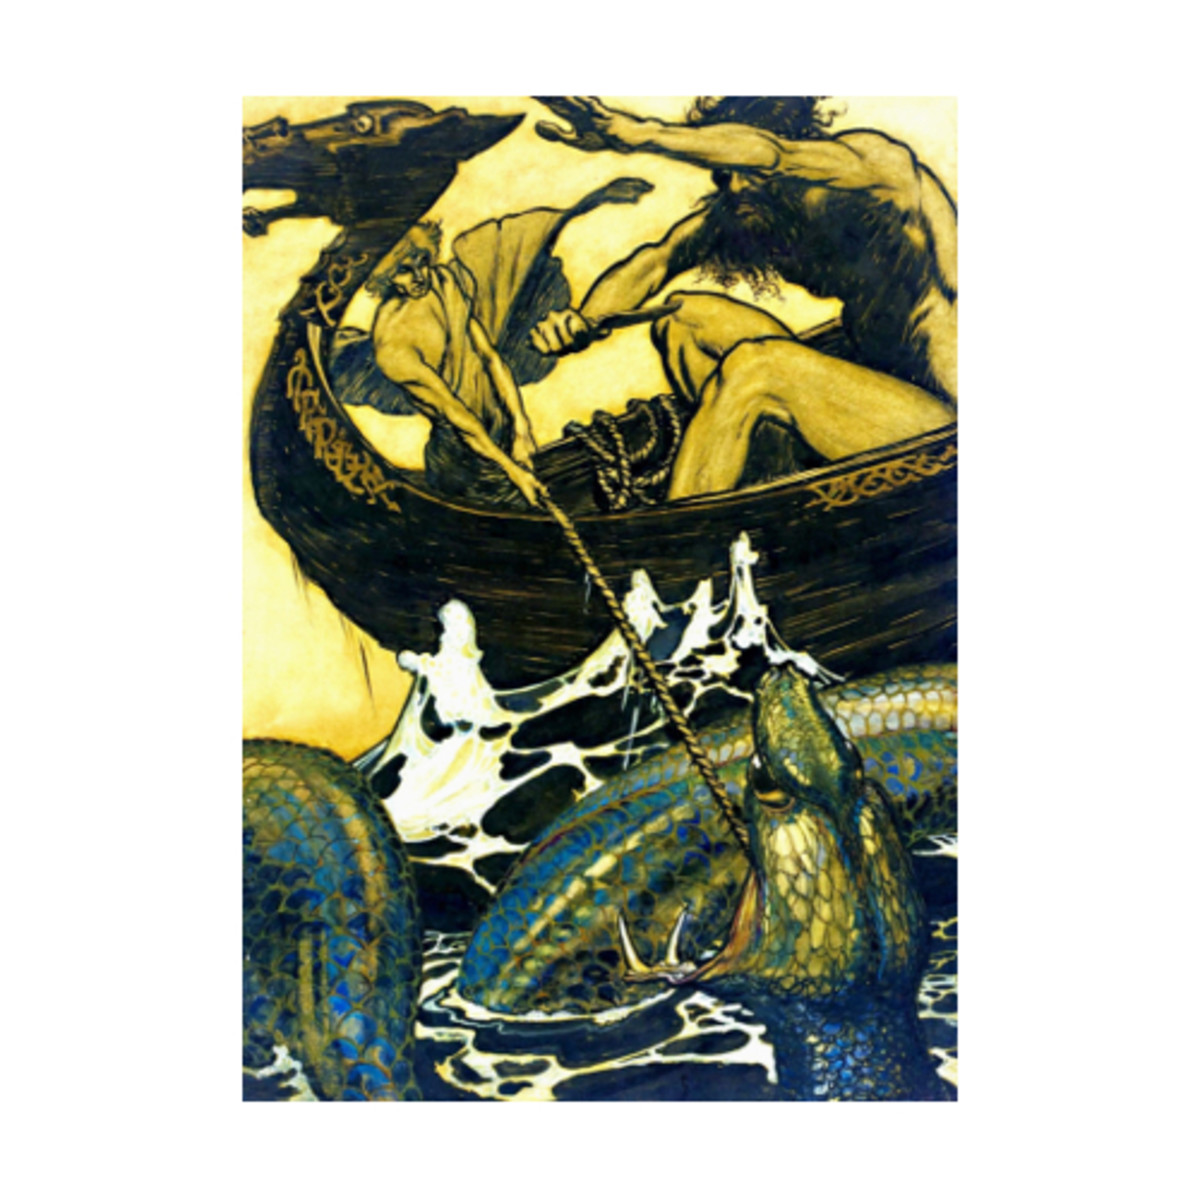 Here we show this design by Arthur Rackham inspired by a classic tale from the Norse Edda of Snorri Sturluson.